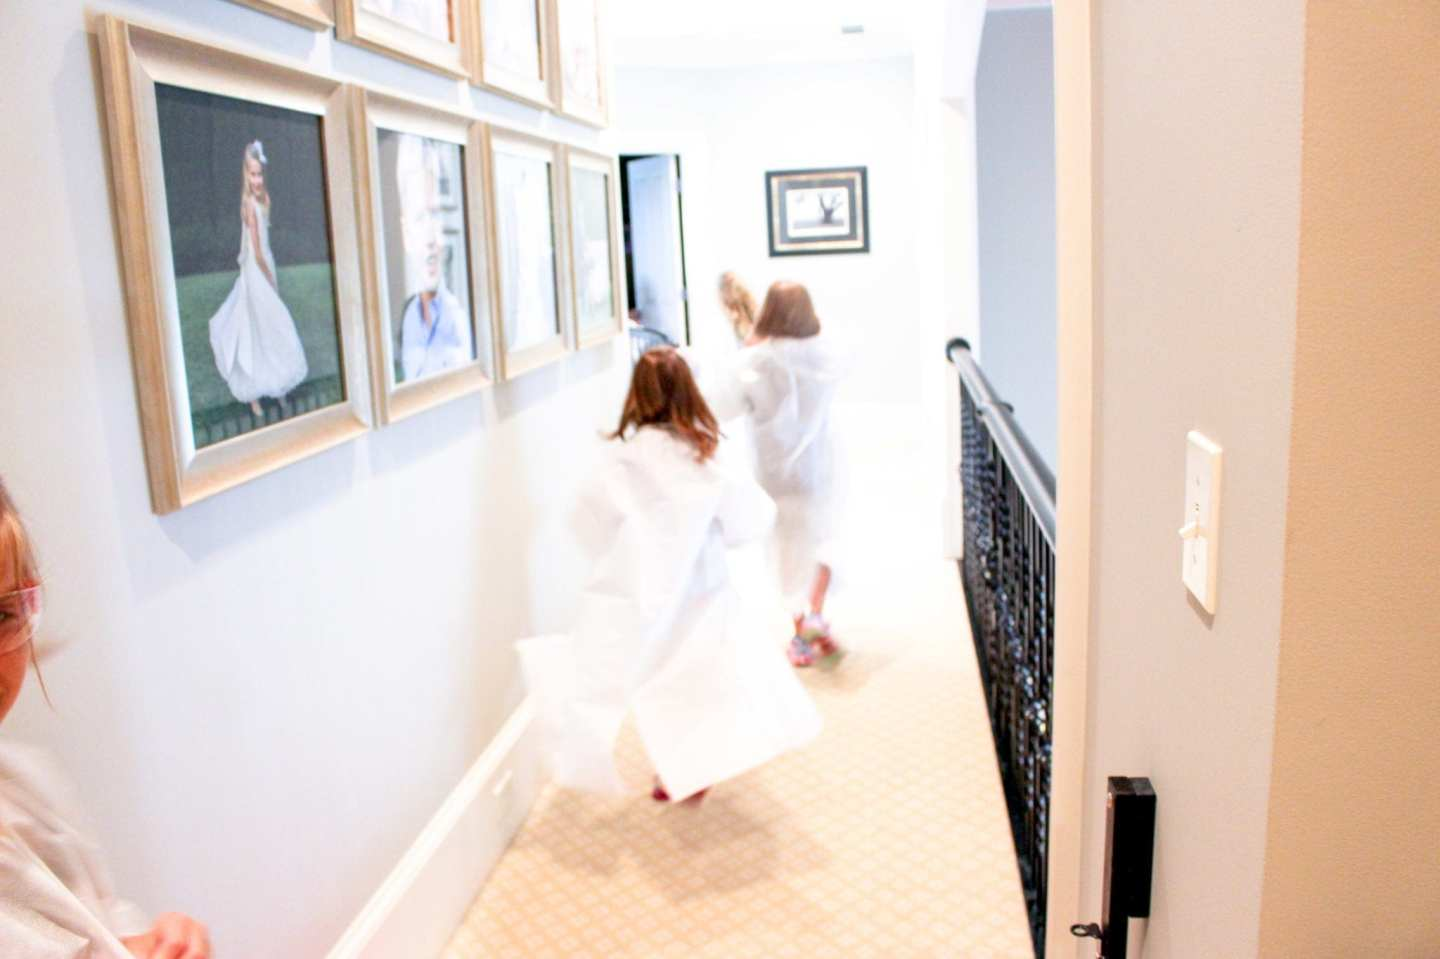 Science is fun! Kids running in throwaway lab coats.